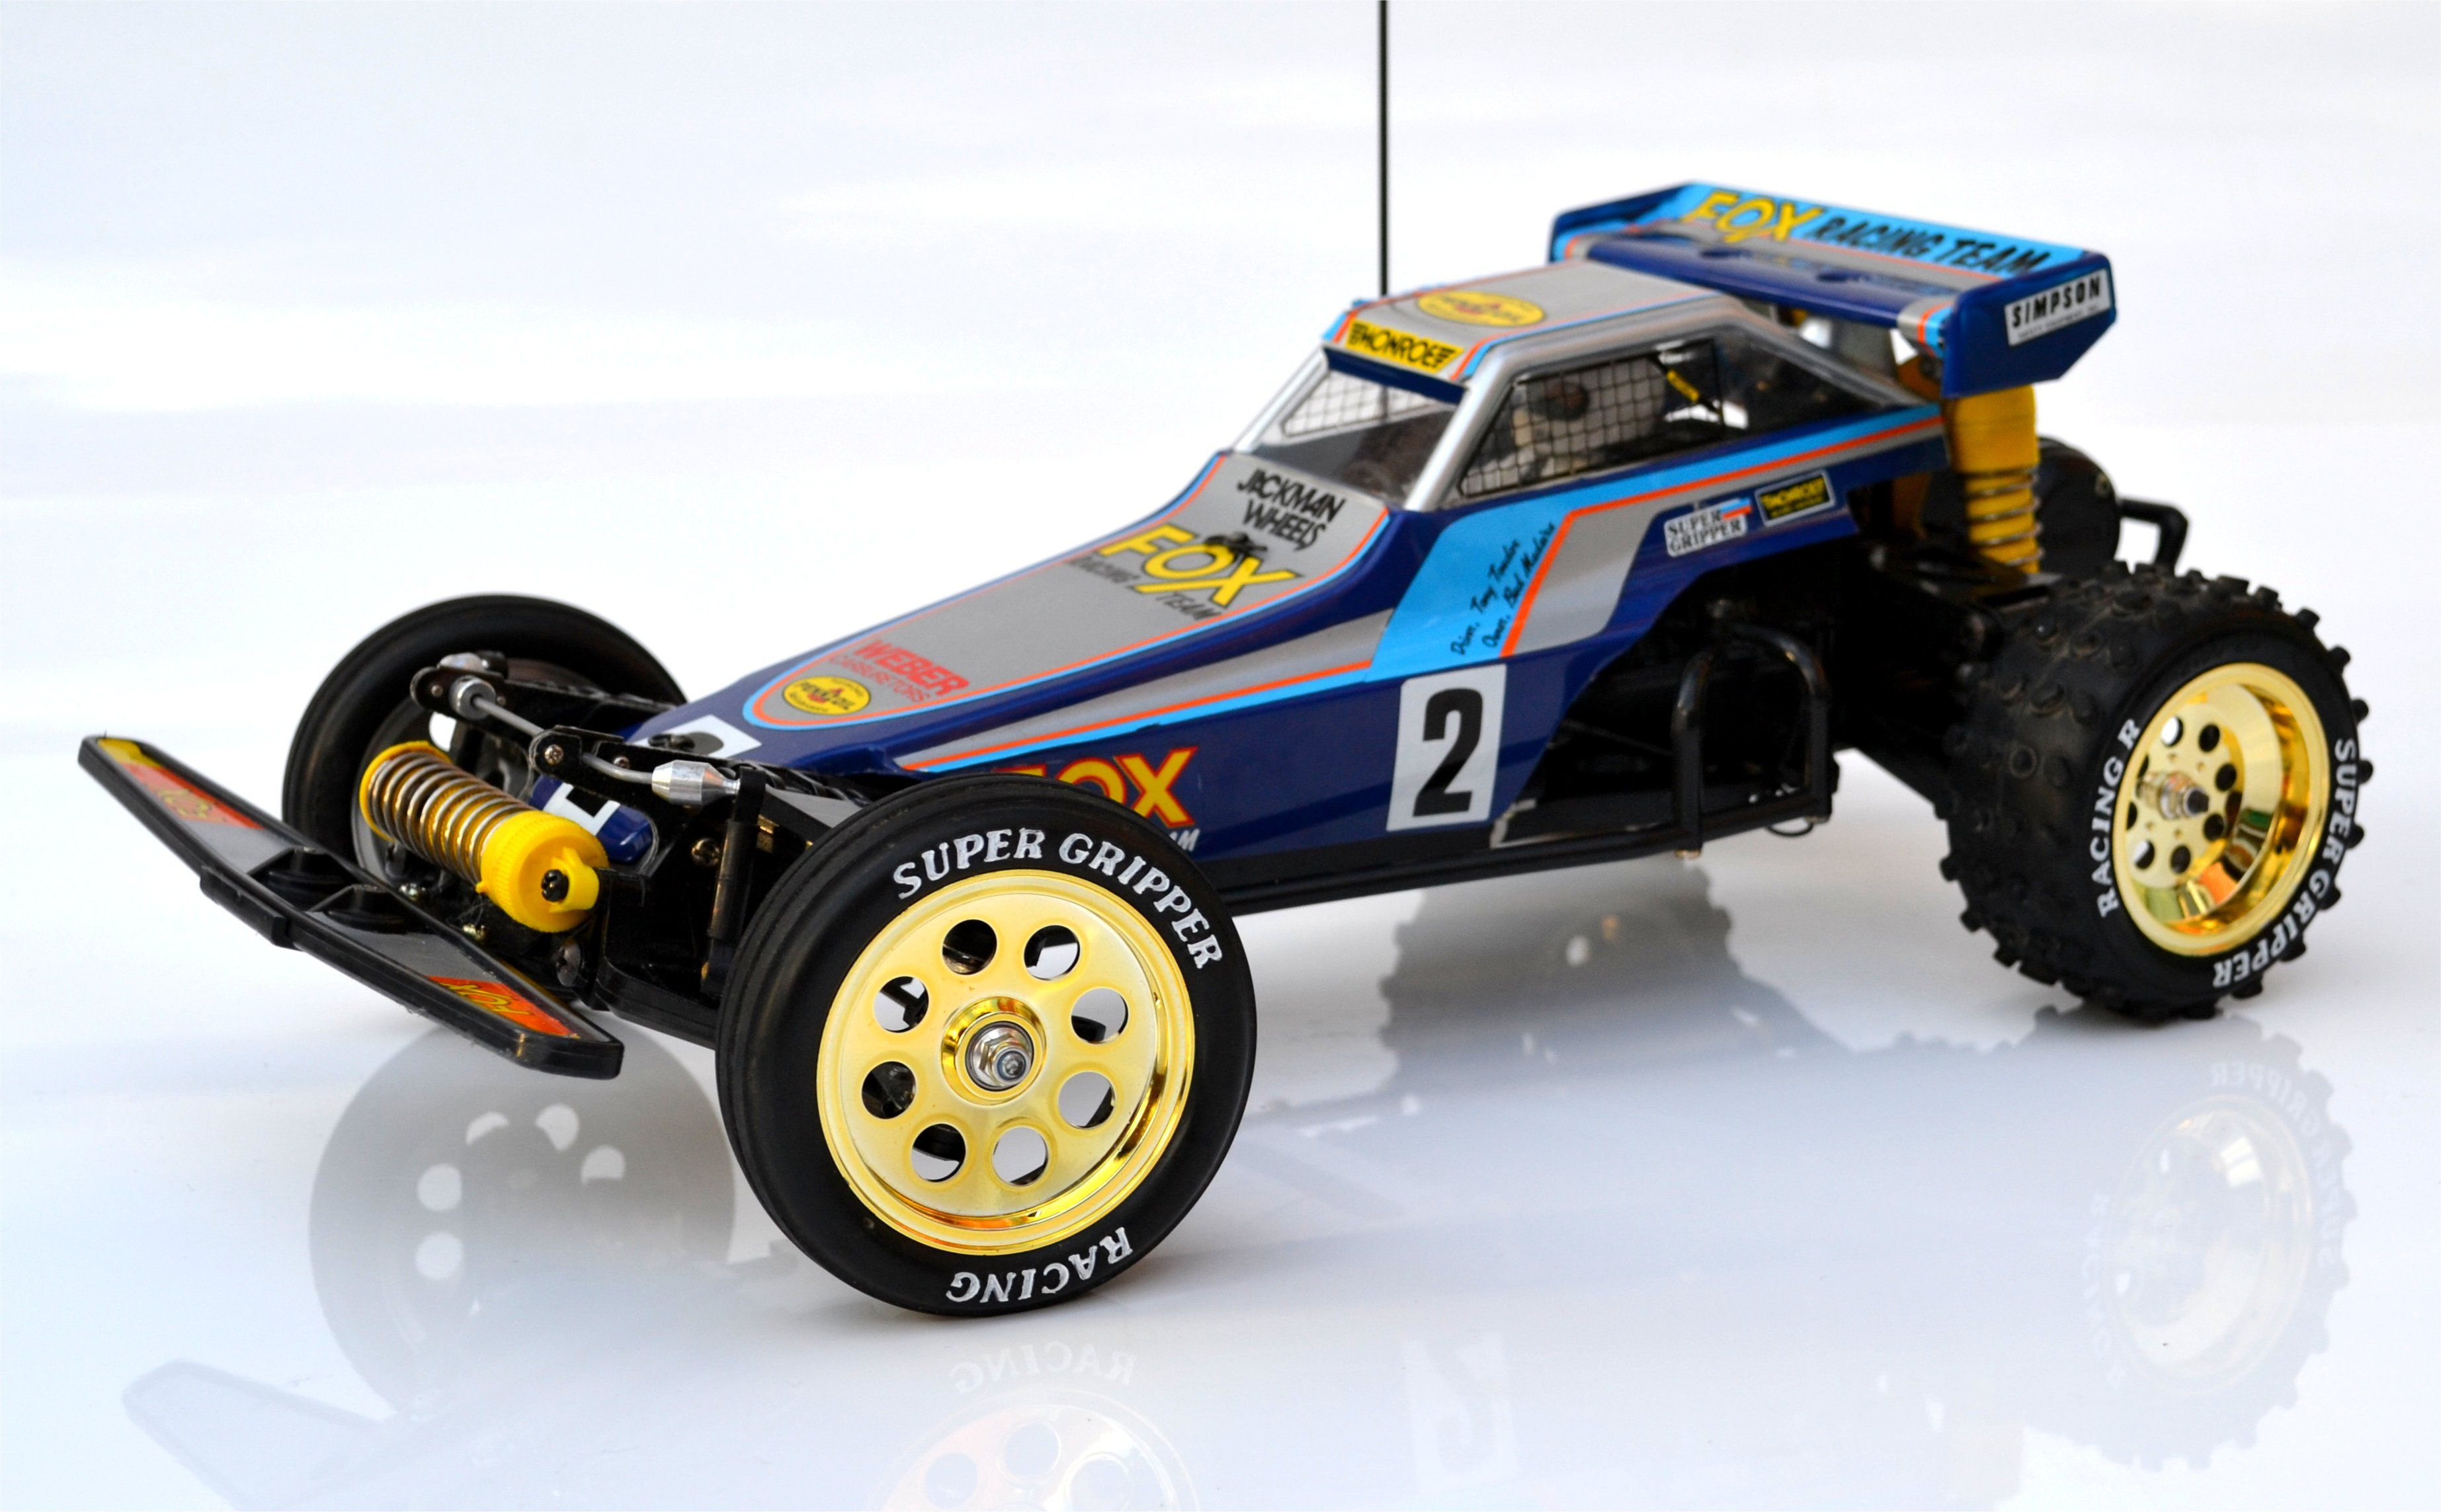 The Only Outing For This Particular Chassis Released In October Rc Cars Rc Cars And Trucks Tamiya